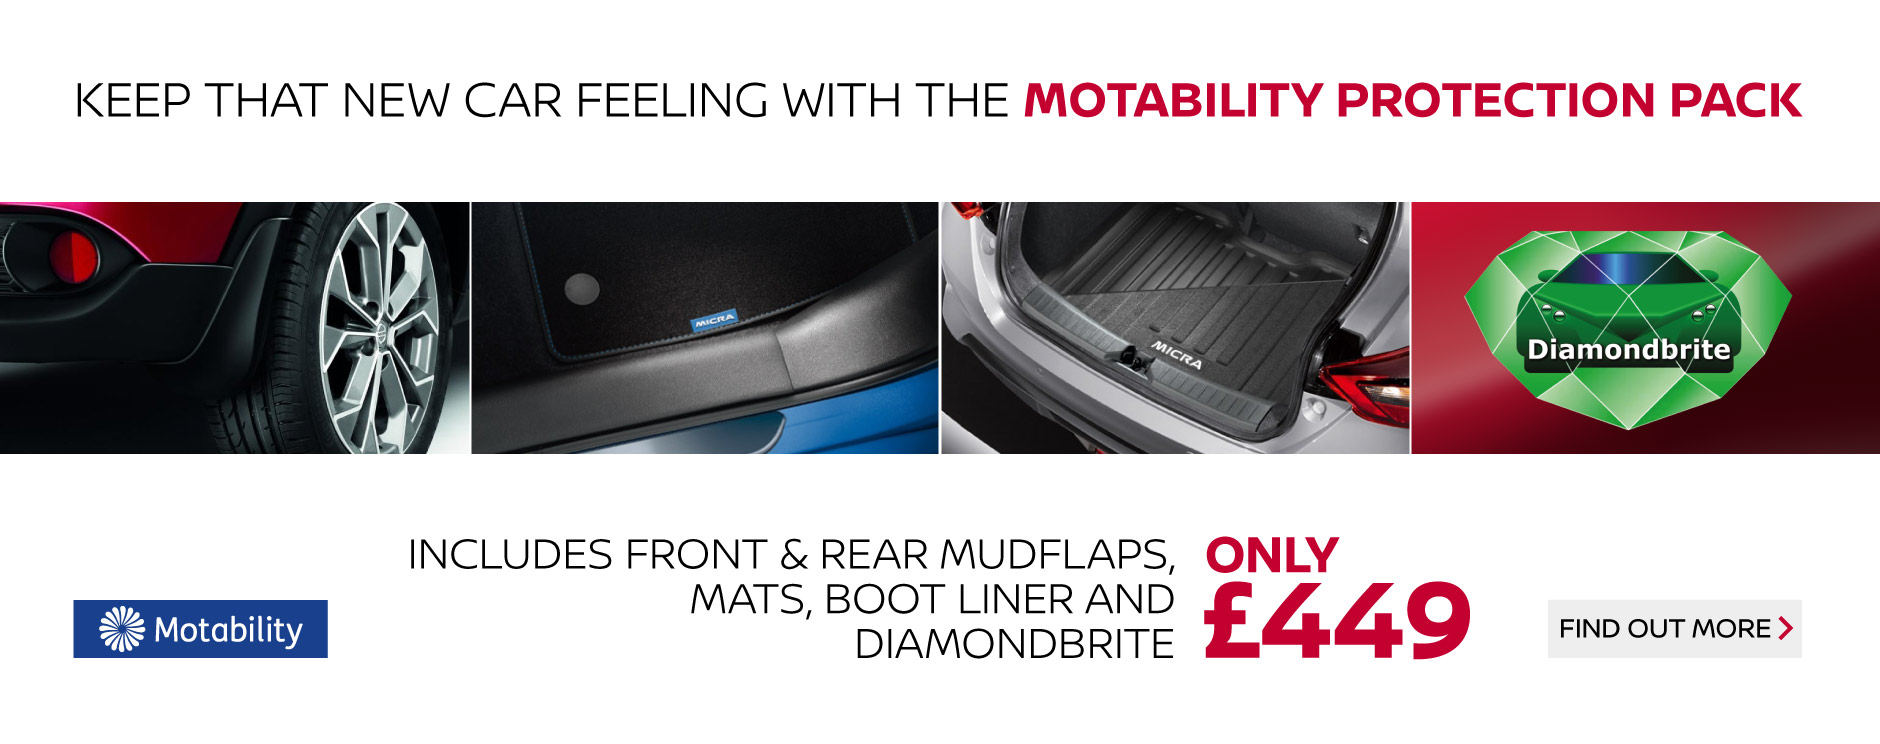 Nissan Motability Protection Pack 100519 Banner 3